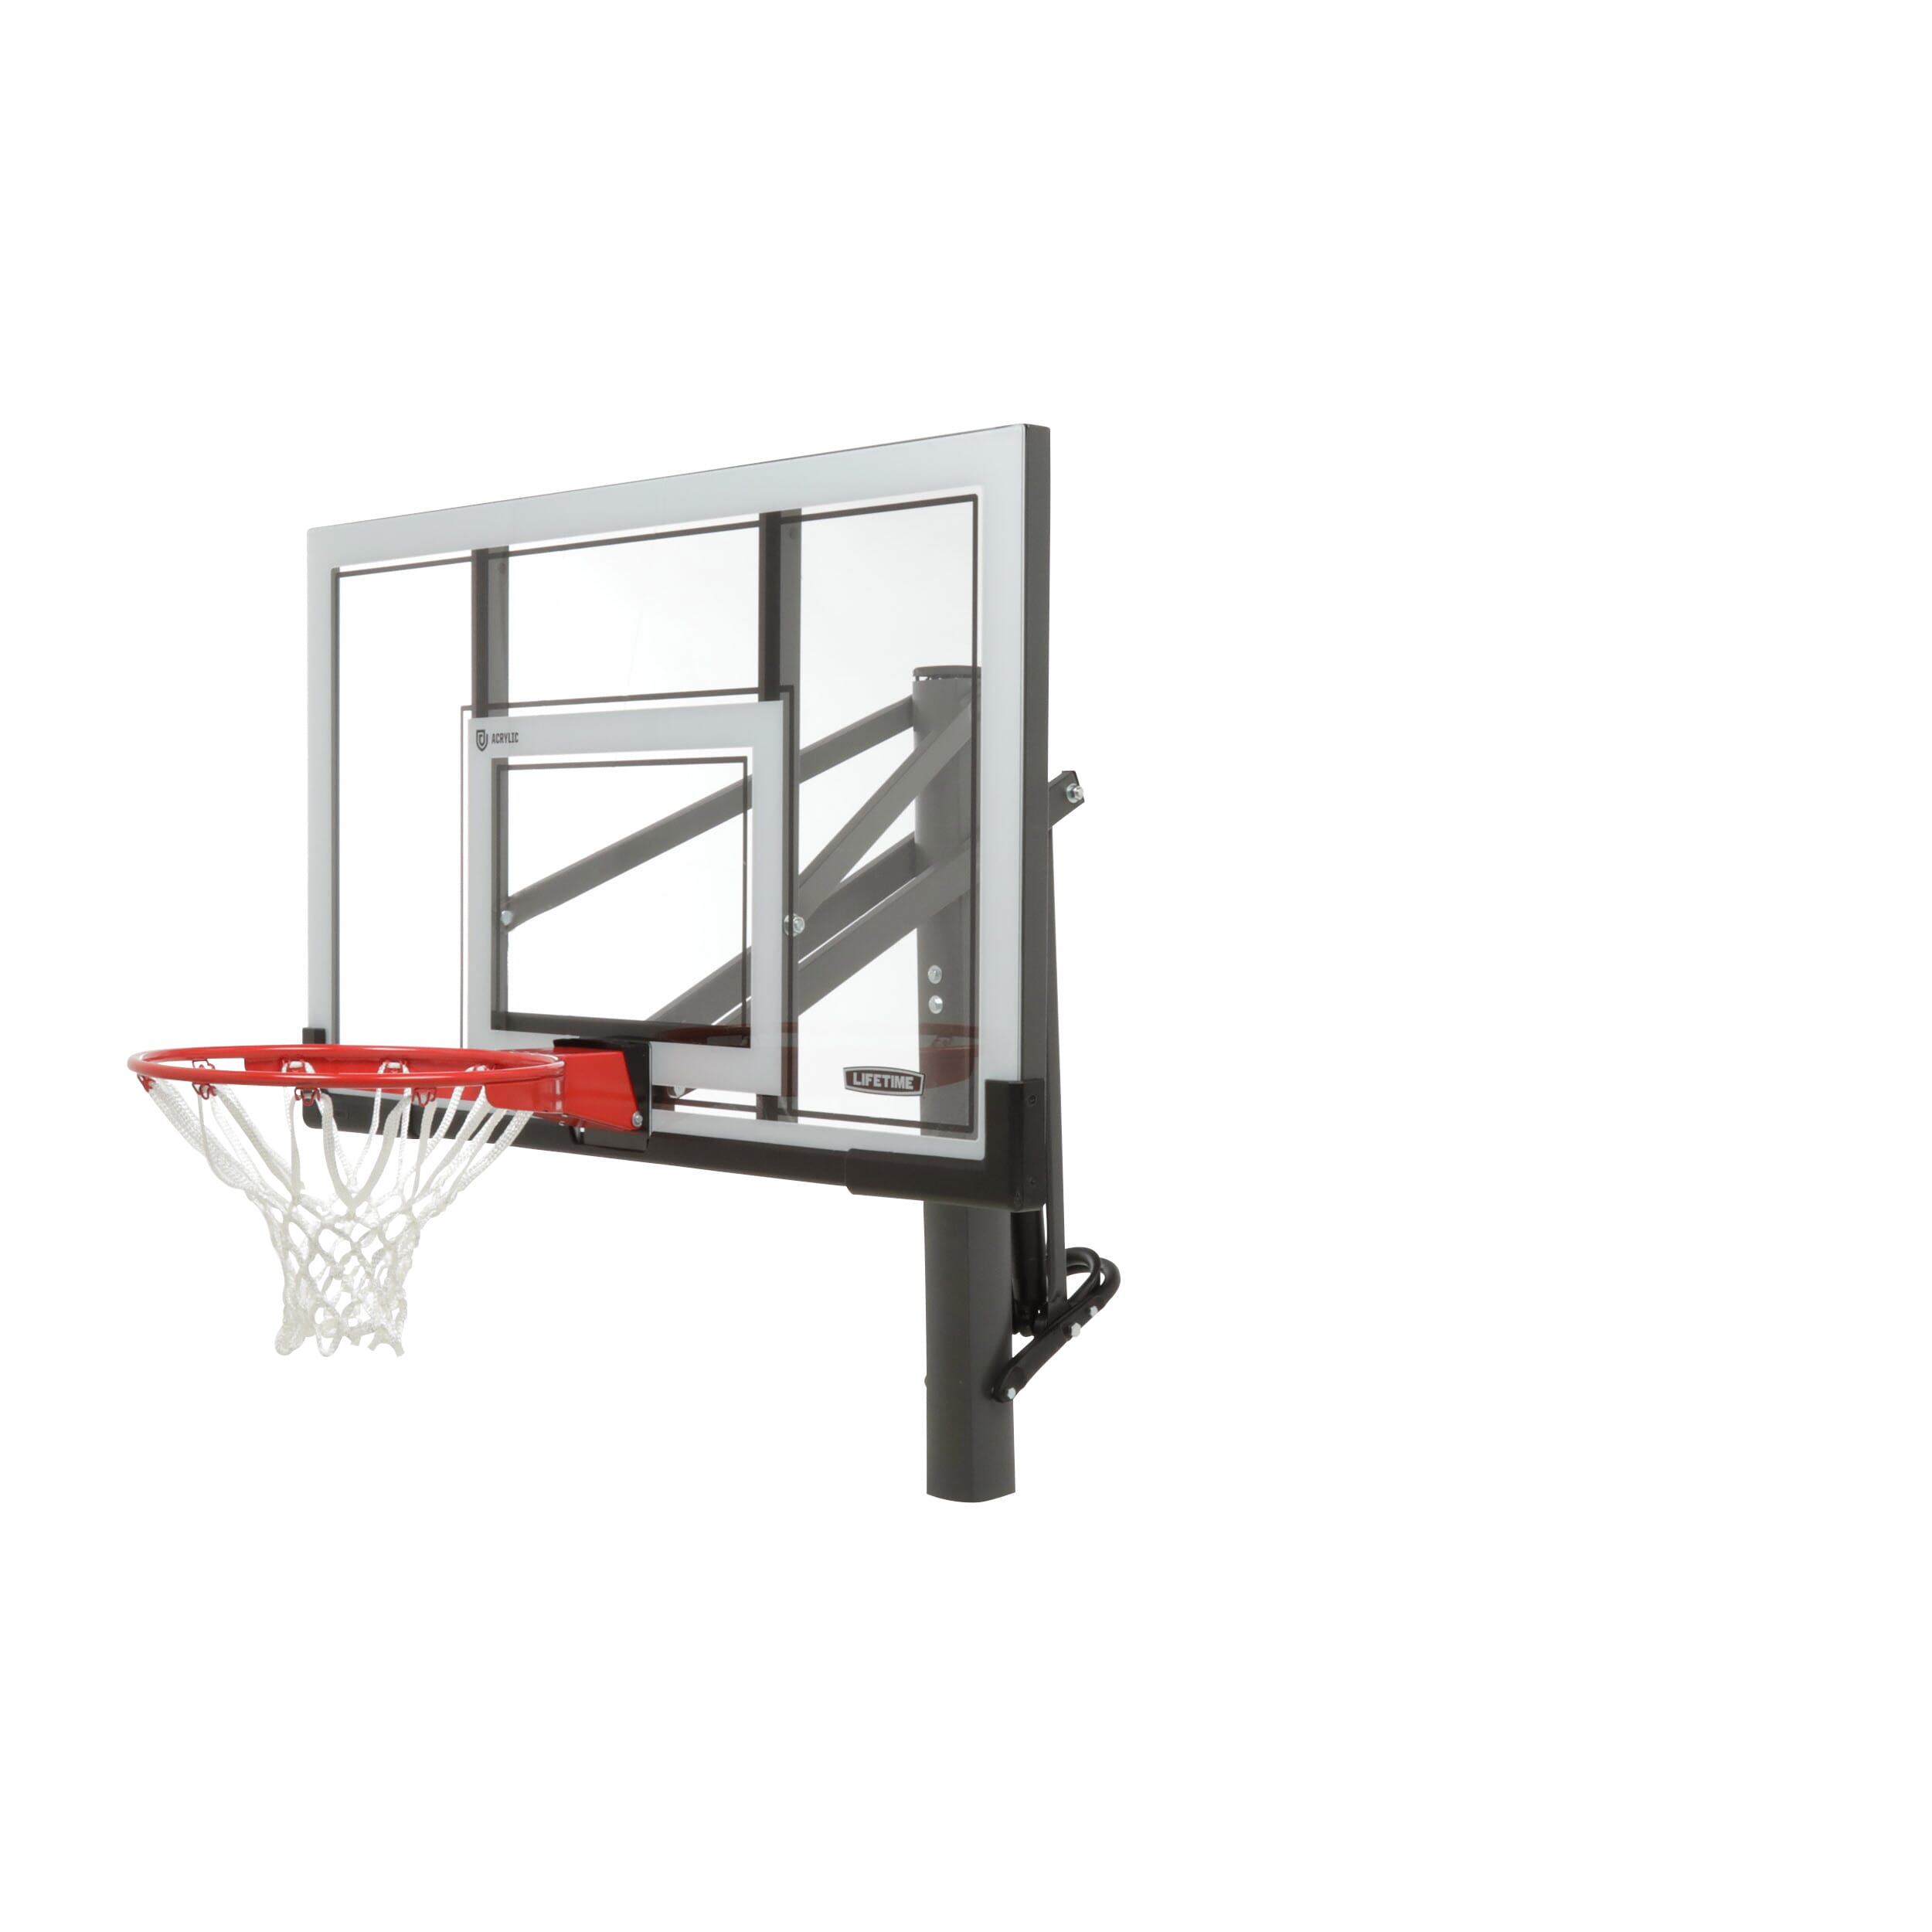 Basketball system featuring a powder-coated finish for outdoor use